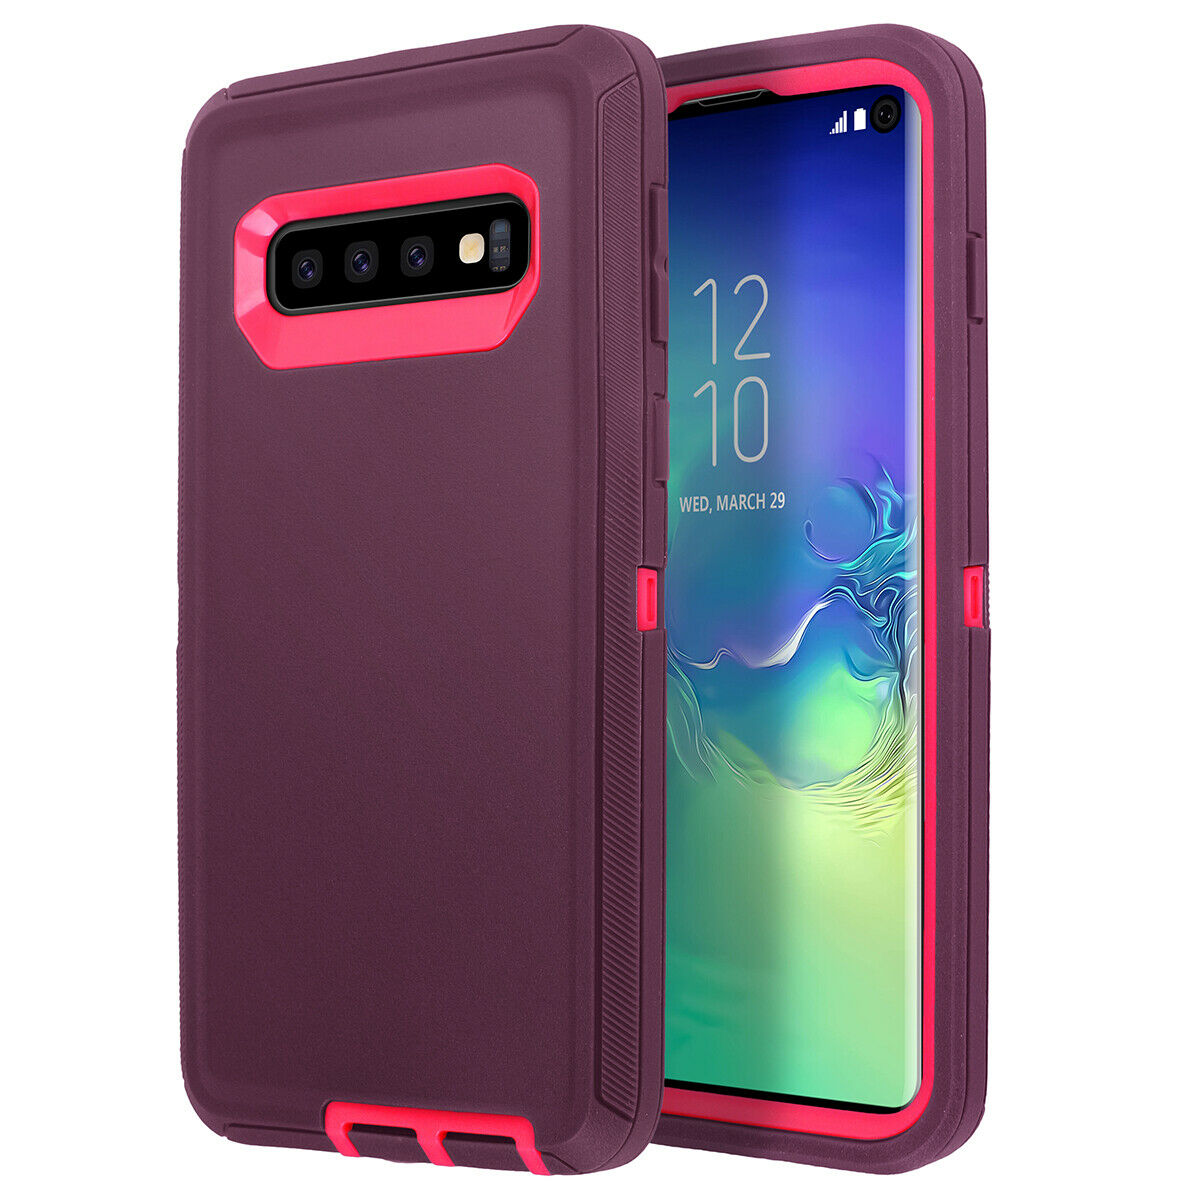 Samsung Galaxy S9 Case Shockproof Hybrid Rubber Armor Rugged Cover-Gray White